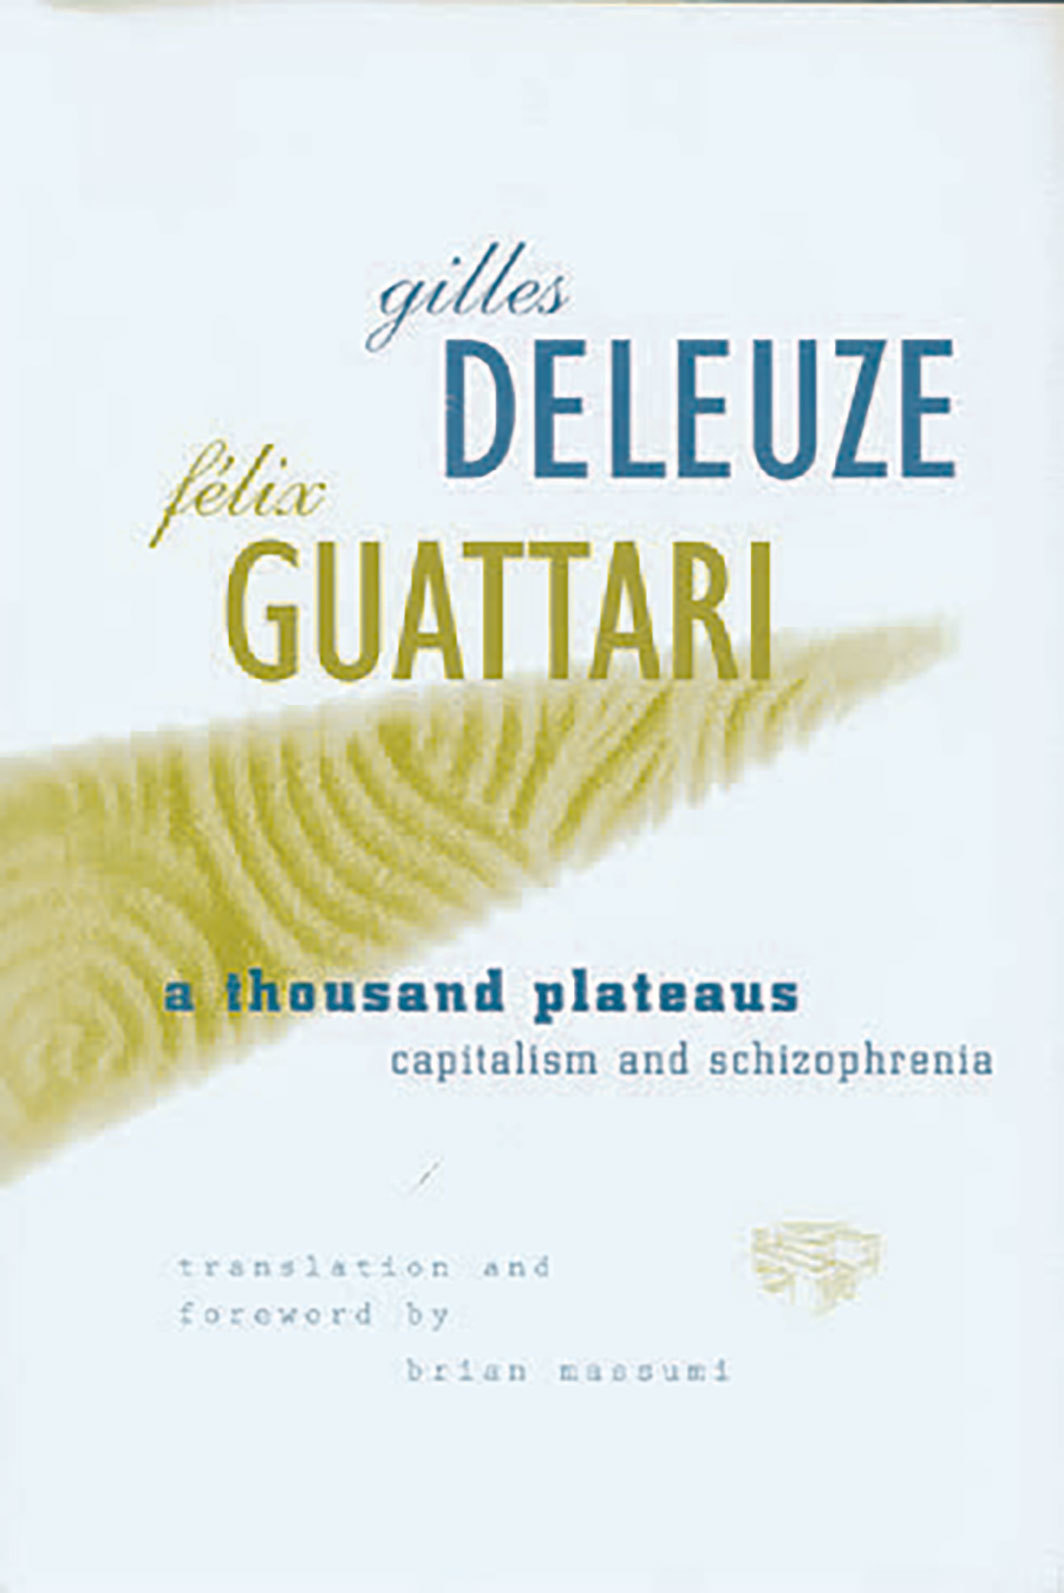 *Cover of the 1999 edition of Gilles Deleuze and Félix Guattari's 1987 _A Thousand Plateaus: Capitalism and Schizophrenia_* (University of Minnesota Press, 1999).